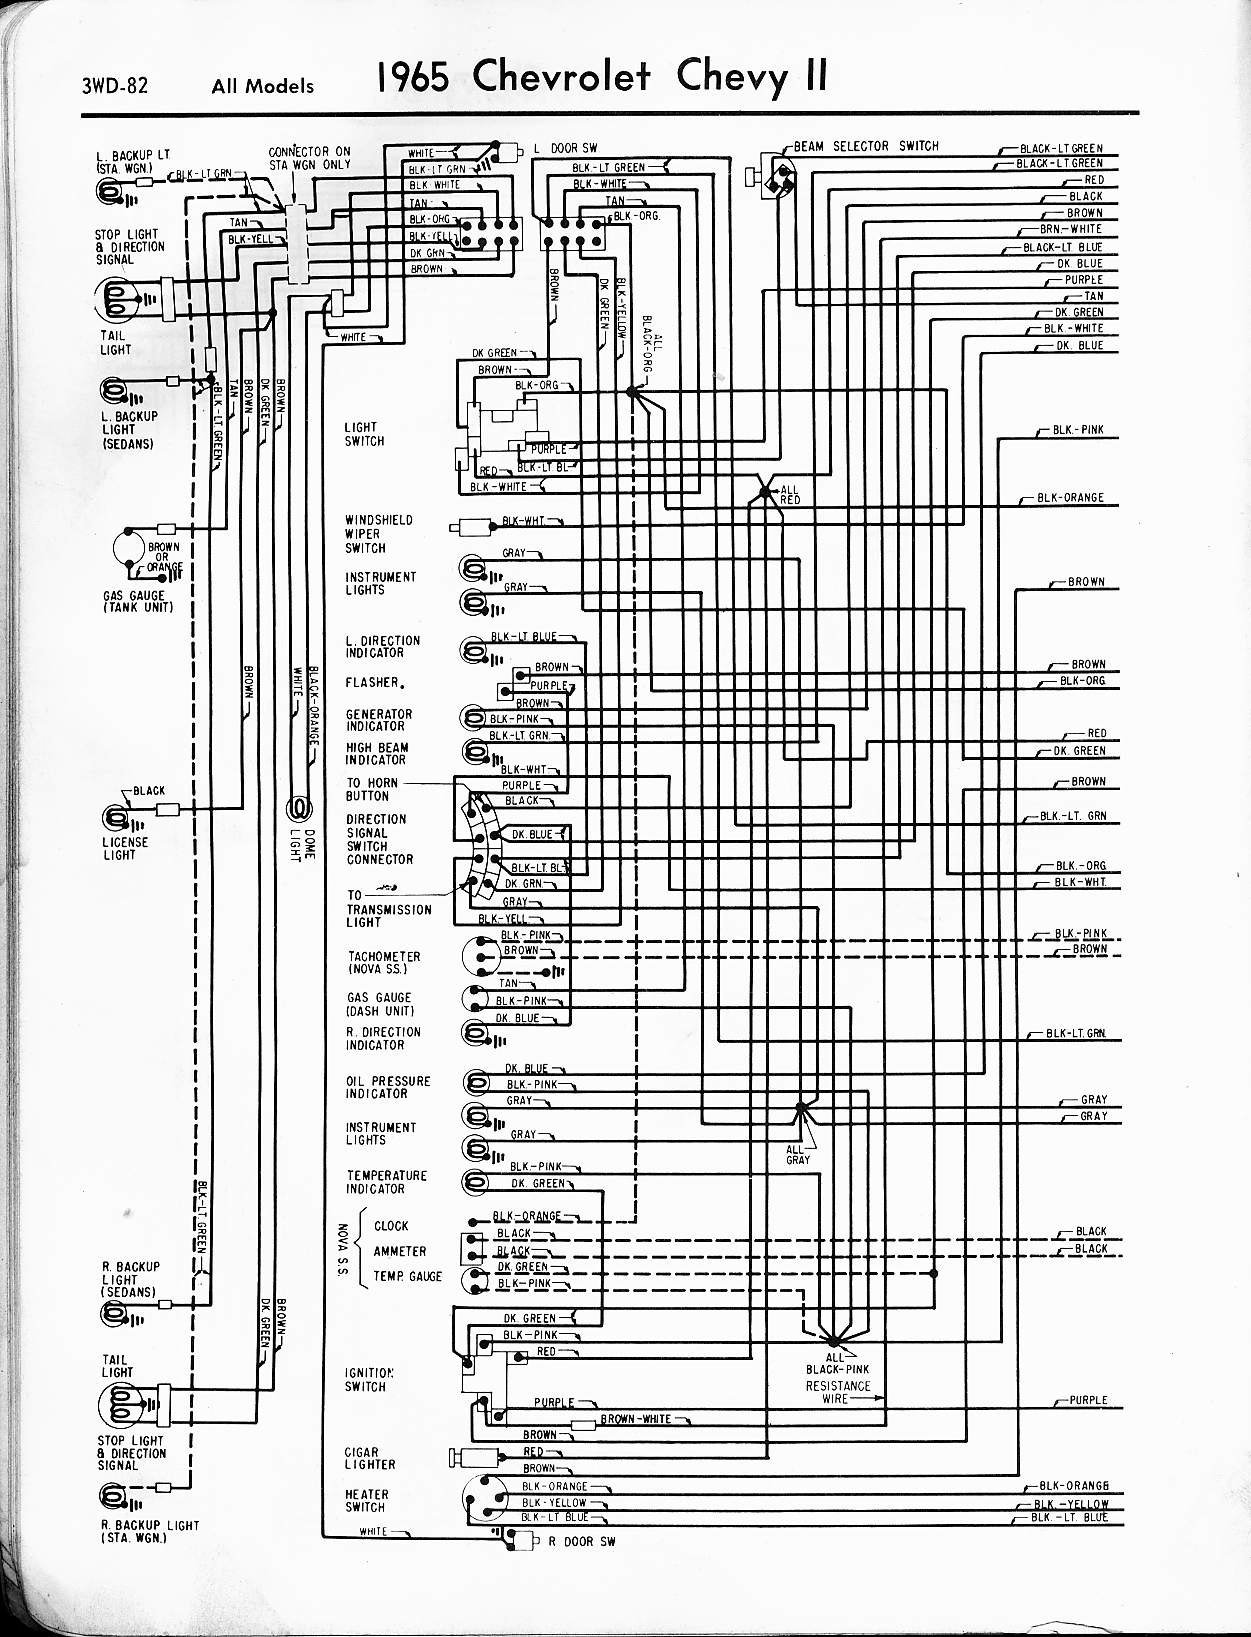 MWireChev65_3WD 082 chevy wiring diagrams chevy radio wiring \u2022 wiring diagrams j 1965 corvair wiring diagram at soozxer.org